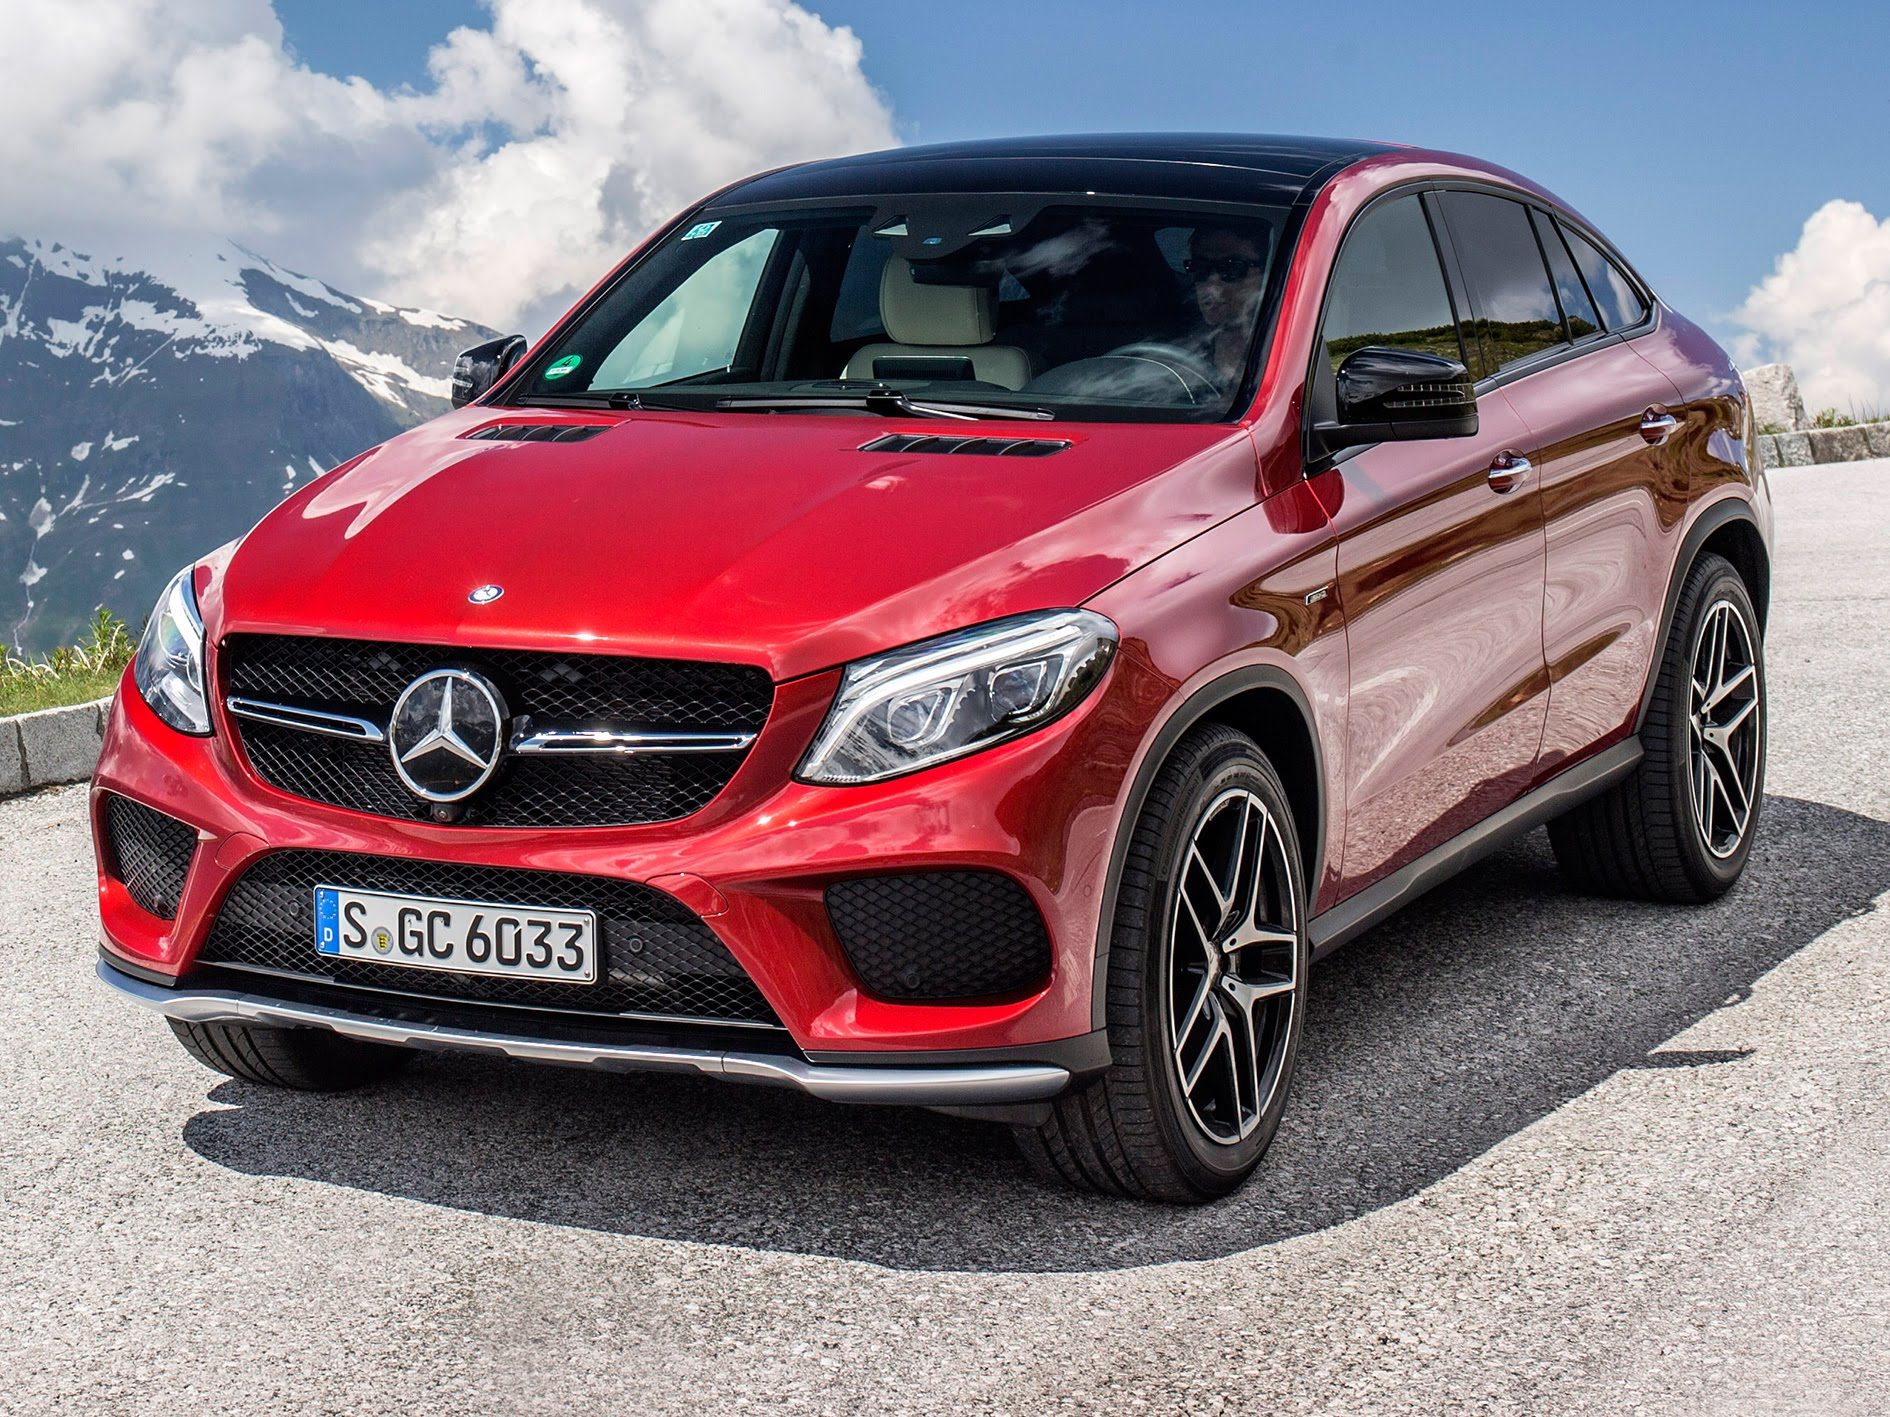 Mercedes benz gle 450 amg launched in india for around for Mercedes benz gle 450